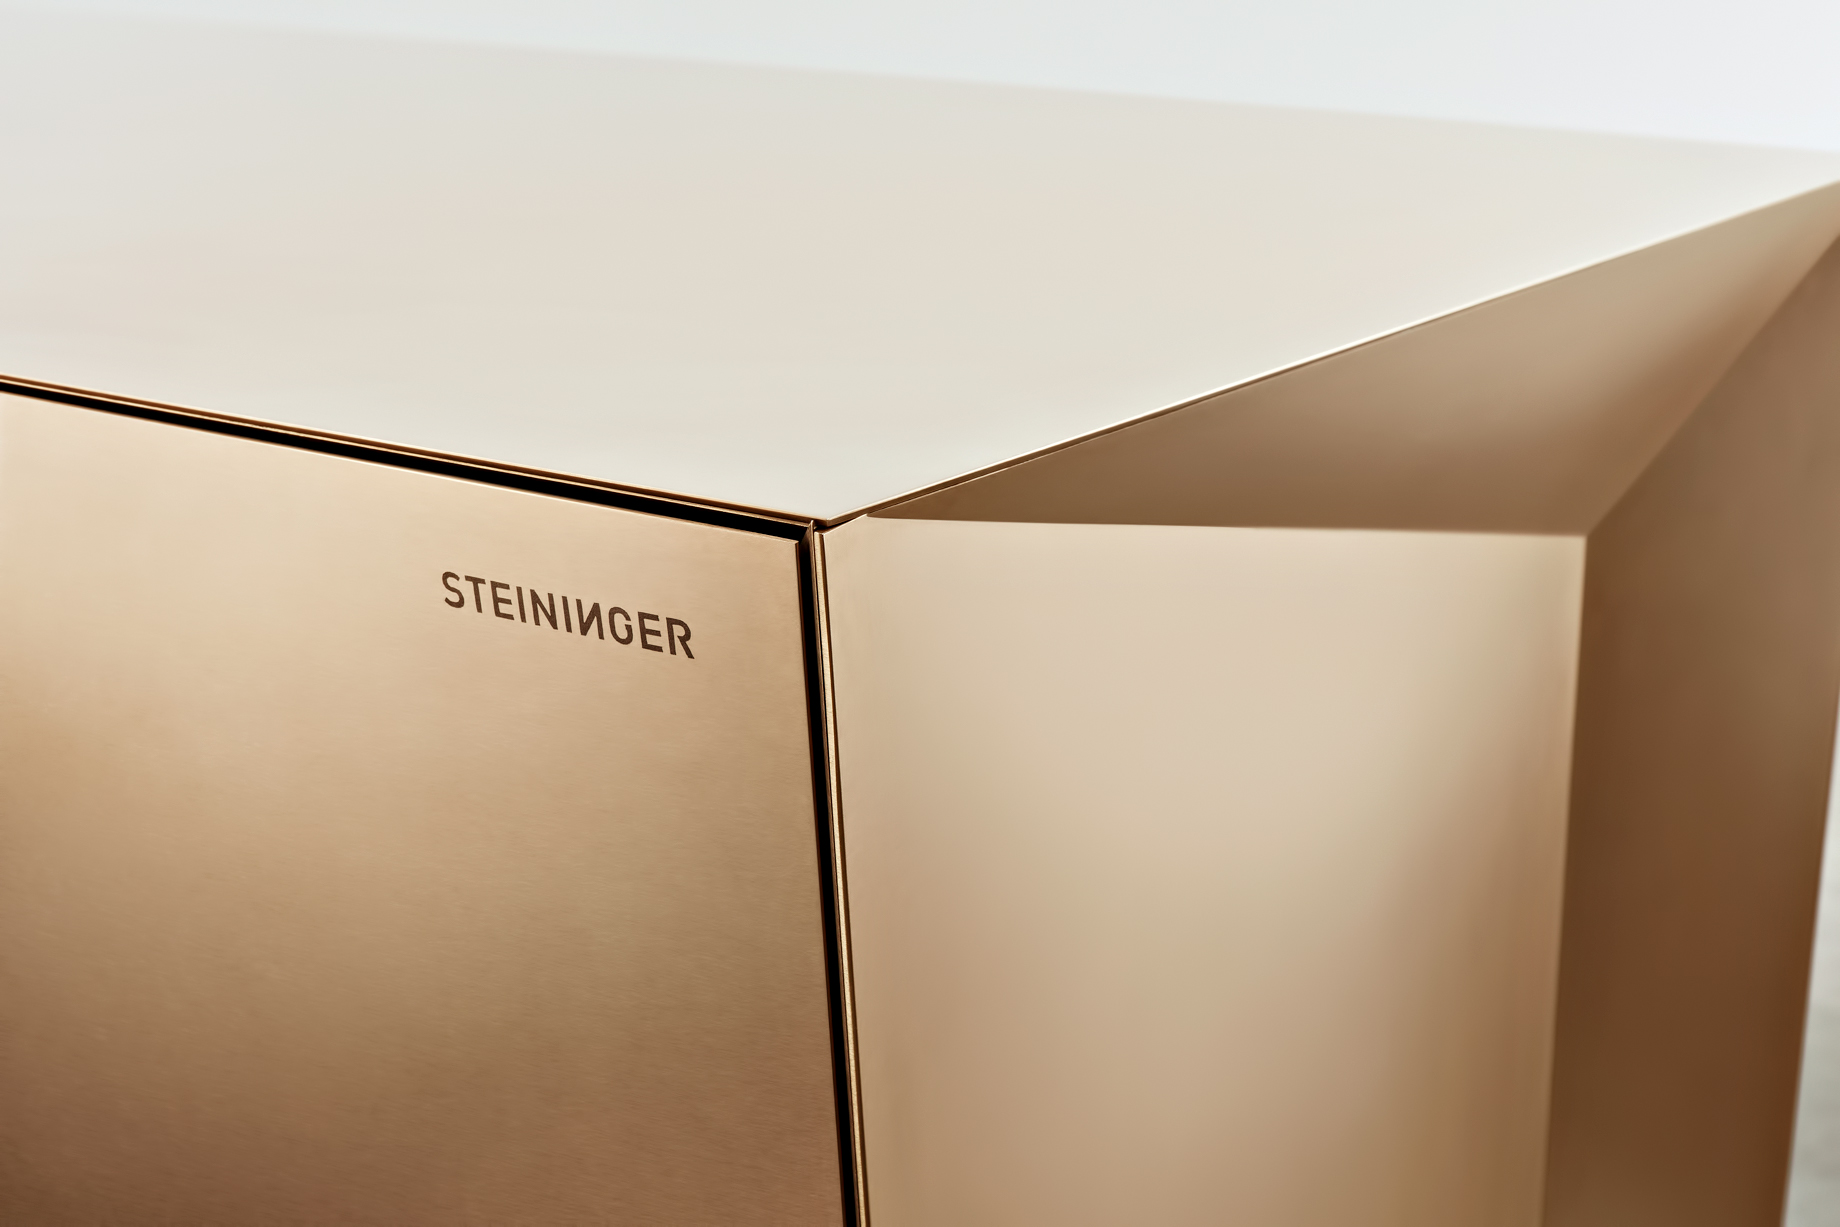 Iconic Steininger FOLD High Tech Kitchen Block Design Inspired by Origami – Digitally construced with special production technology for precise surfaces